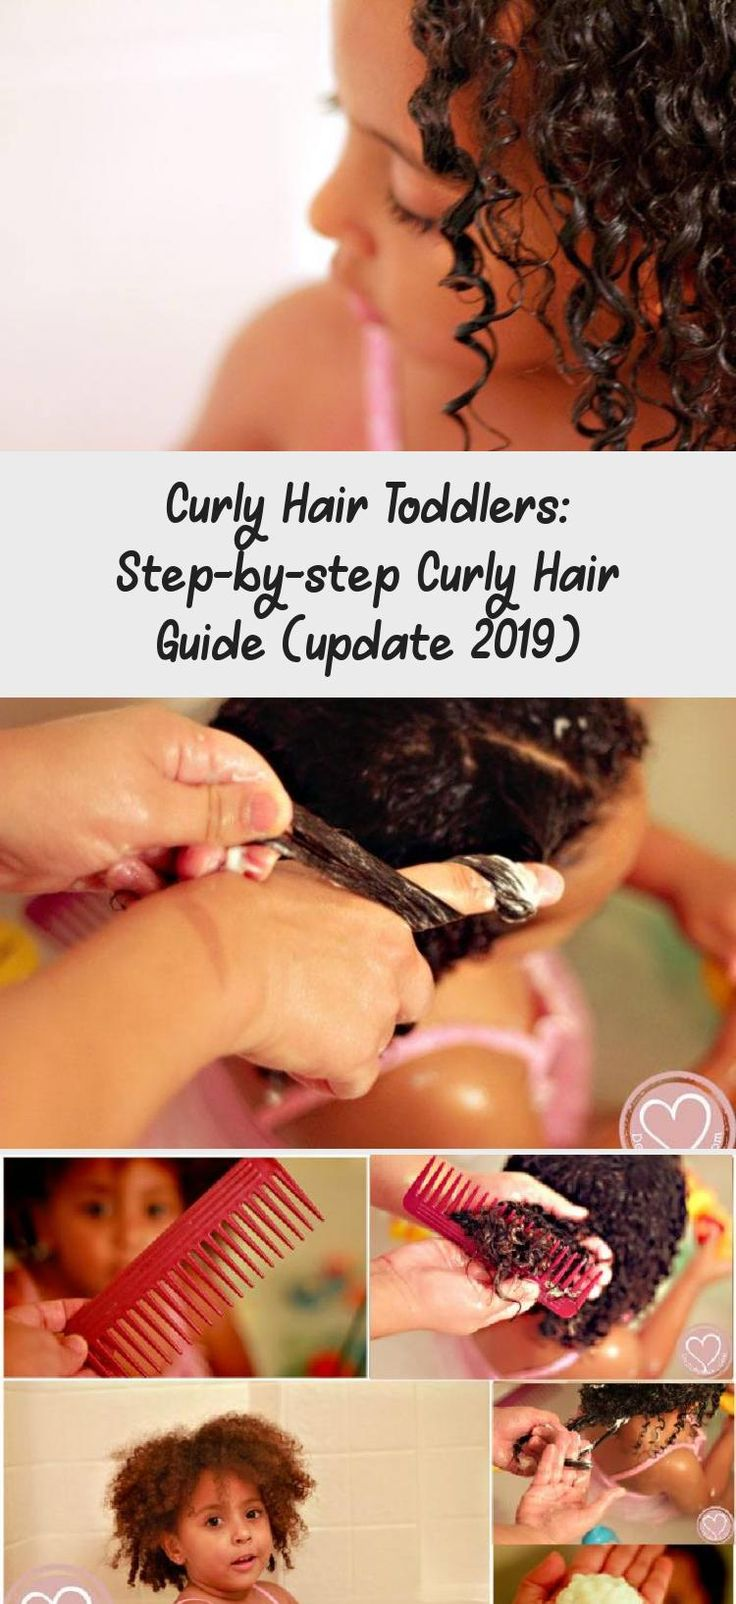 Curly Hair Toddlers: Step-by-step Curly Hair Guide (update 2019)